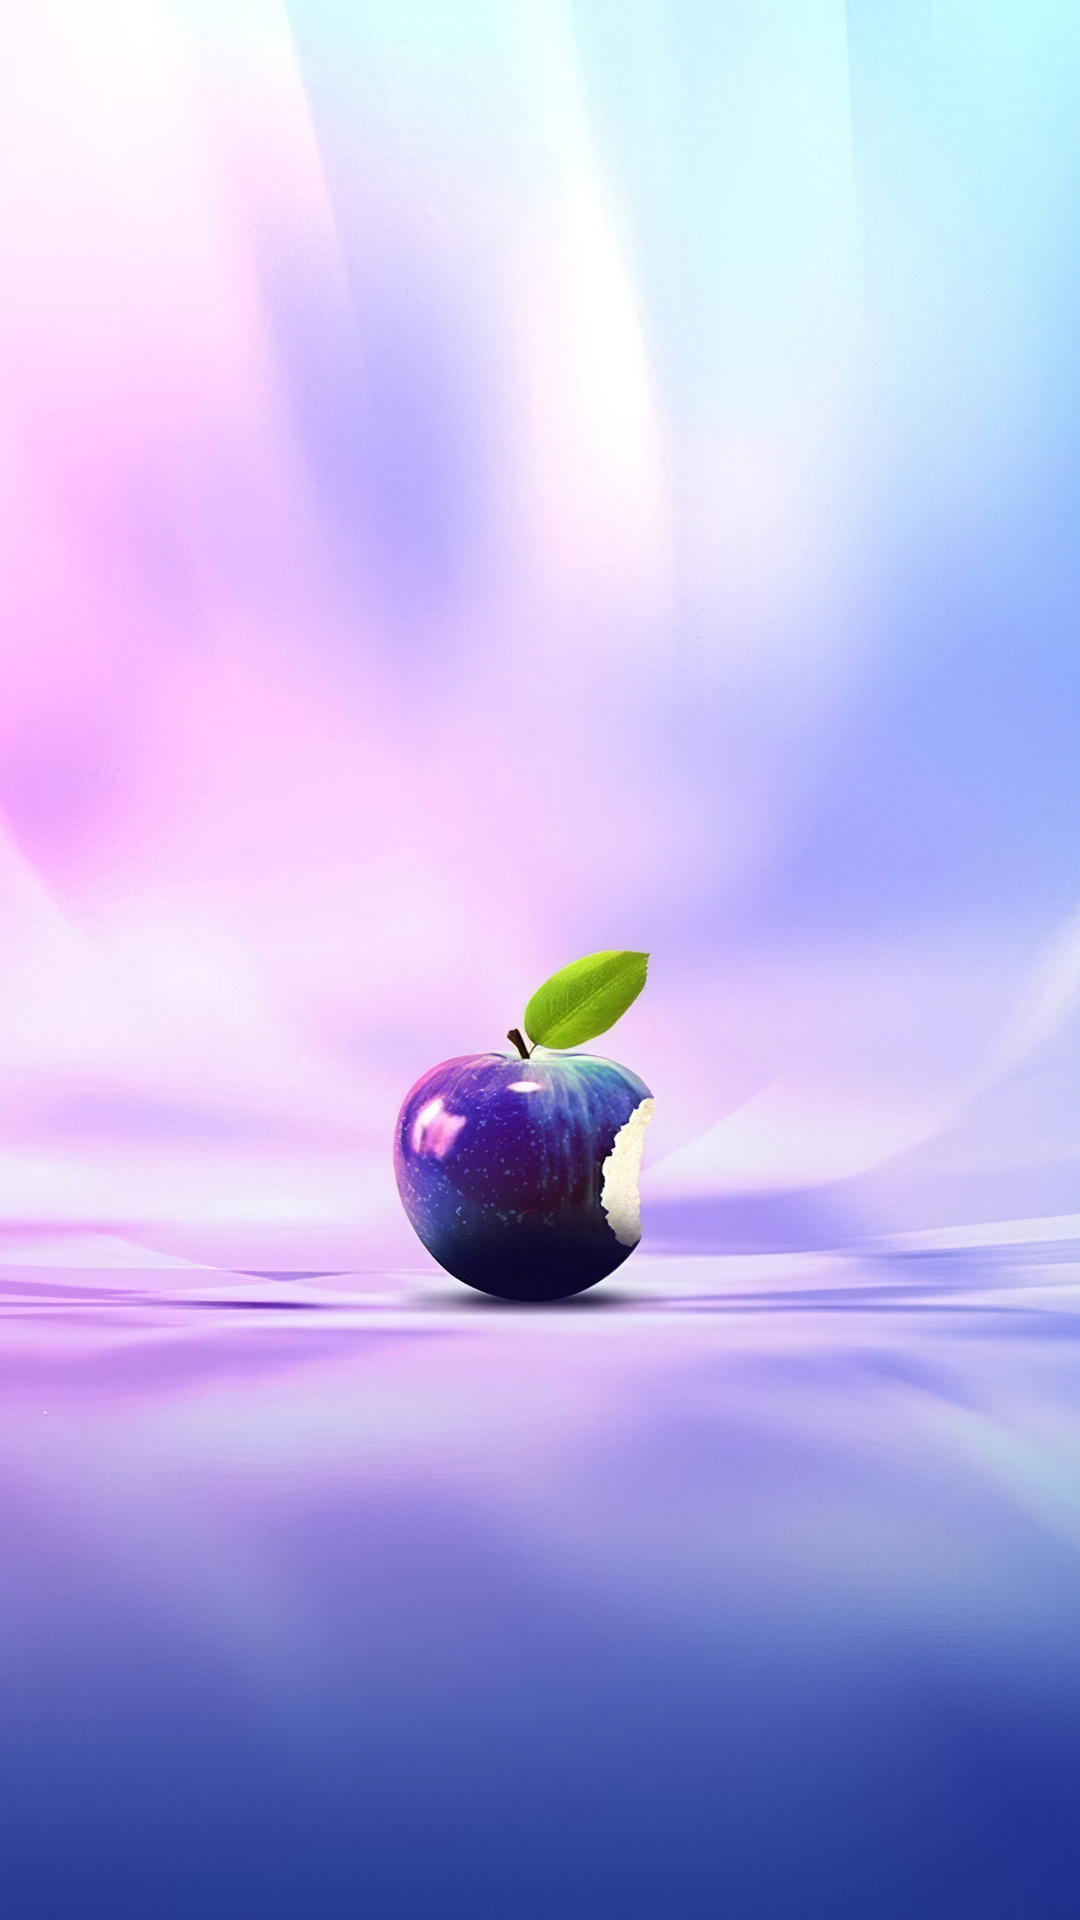 real-apple-logo-4k-f5.jpg